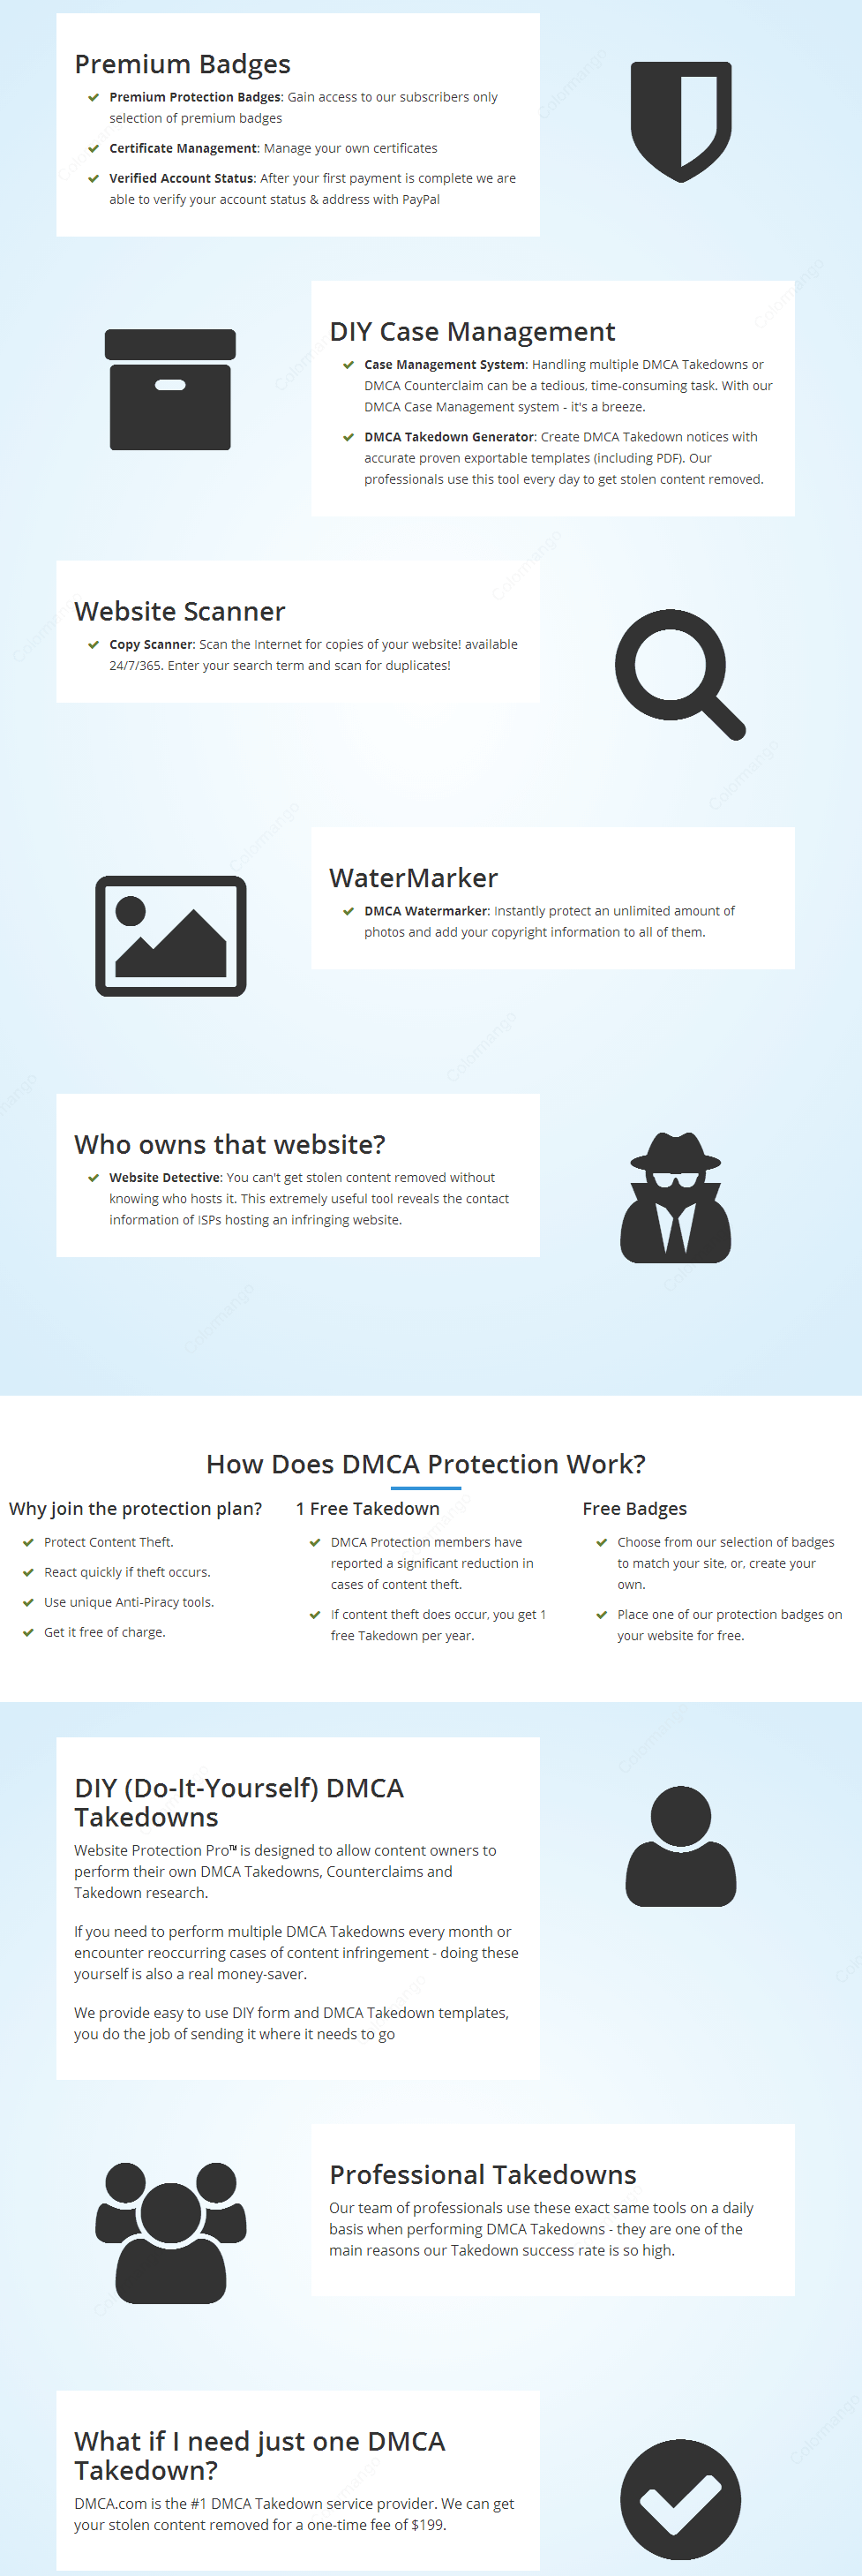 DMCA Takedown Online Shopping, Price, Free Trial, Rating & Reviews